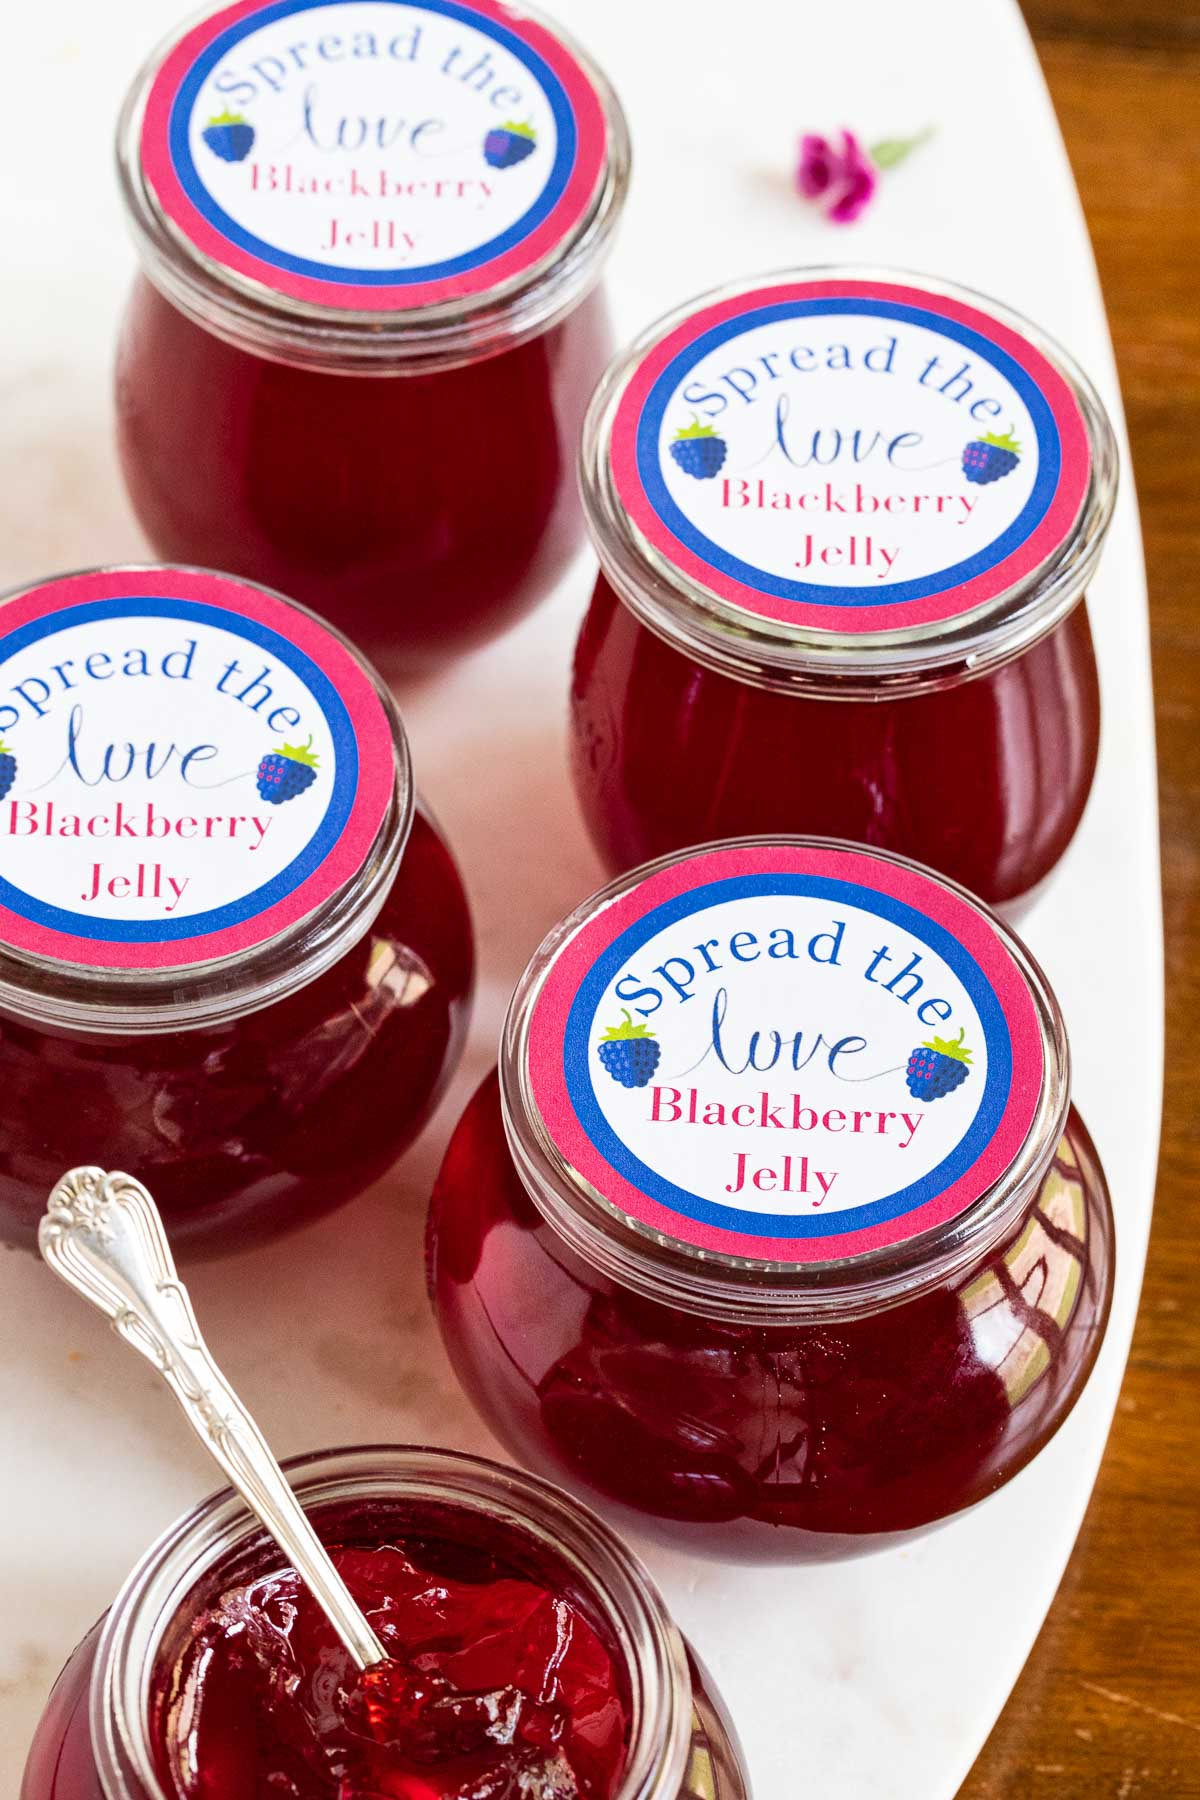 Vertical photo of a group of glass jars of Easy Blackberry Jelly with printed colored labels on the lids.